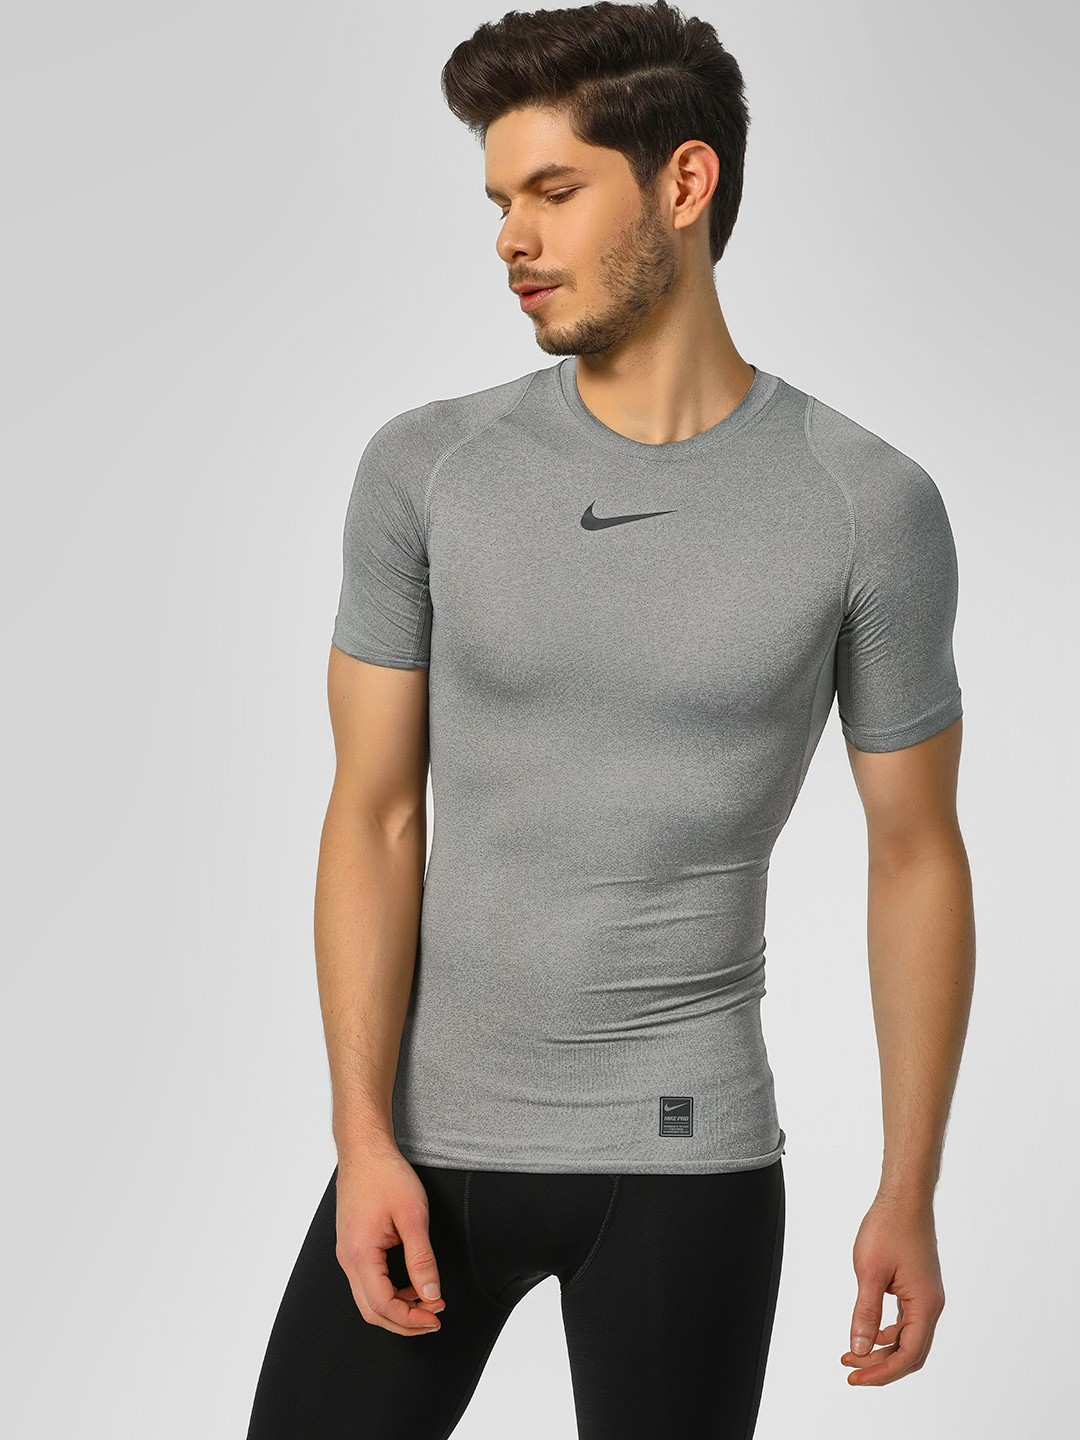 Nike Grey Pro Short Sleeve Compression Tee 1